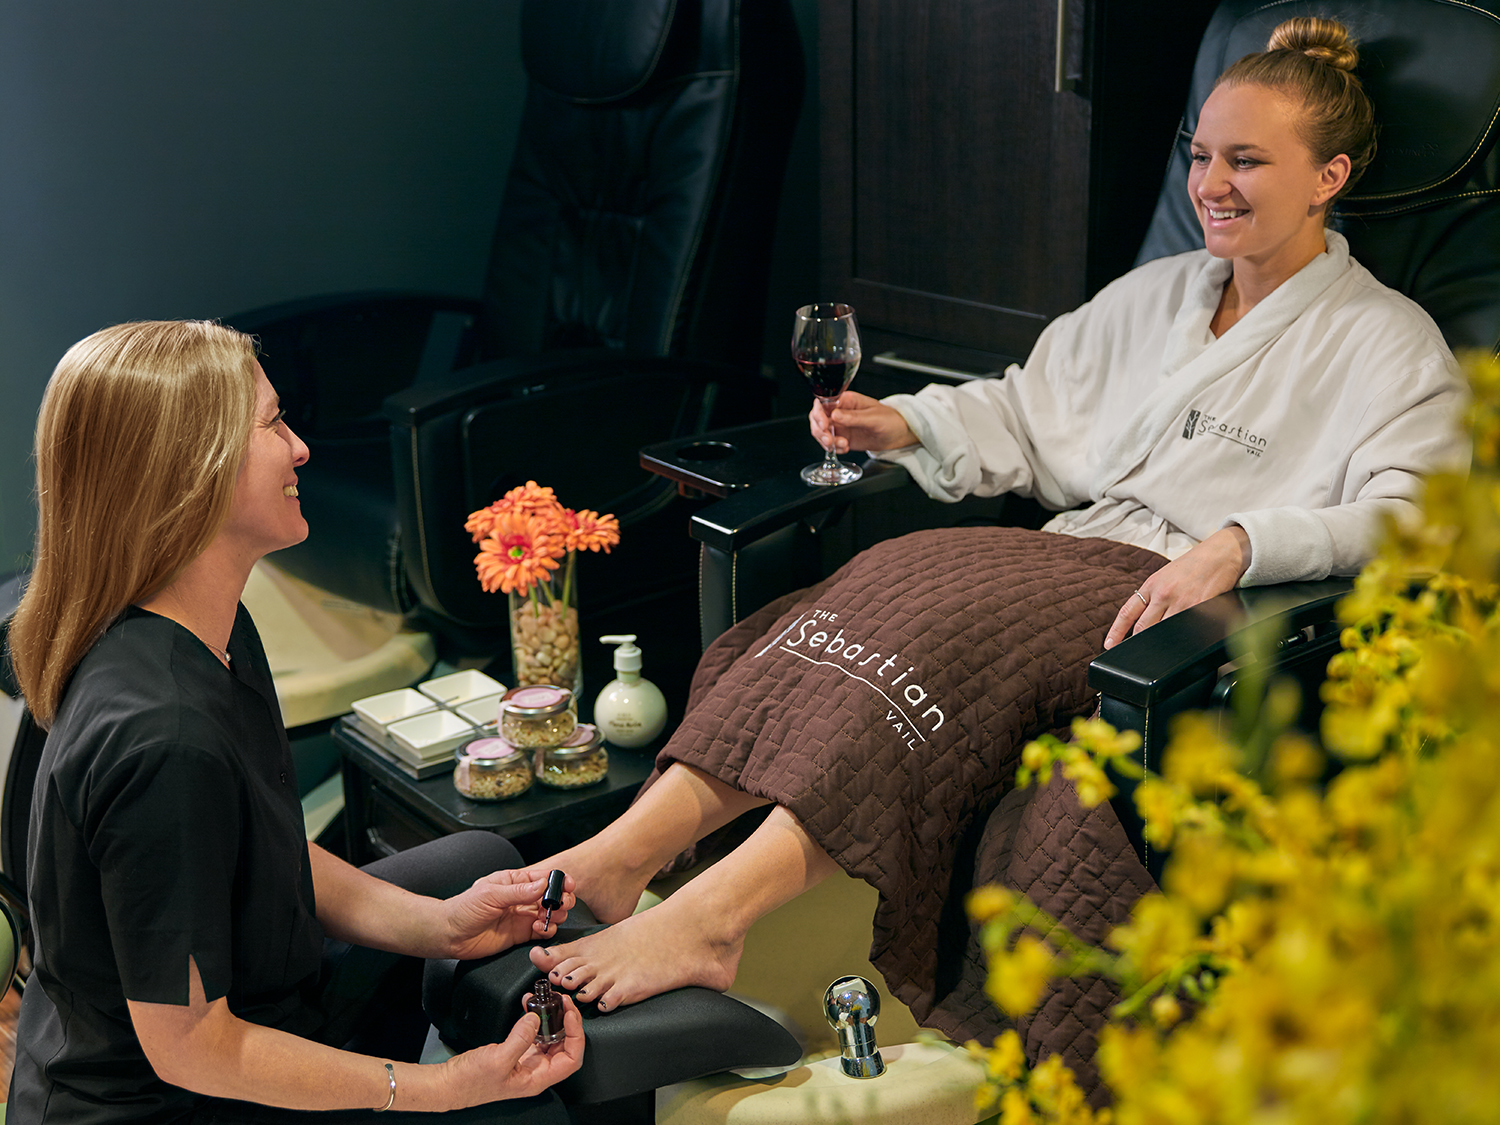 Bloom Spa also offers signature manicures and pedicures.